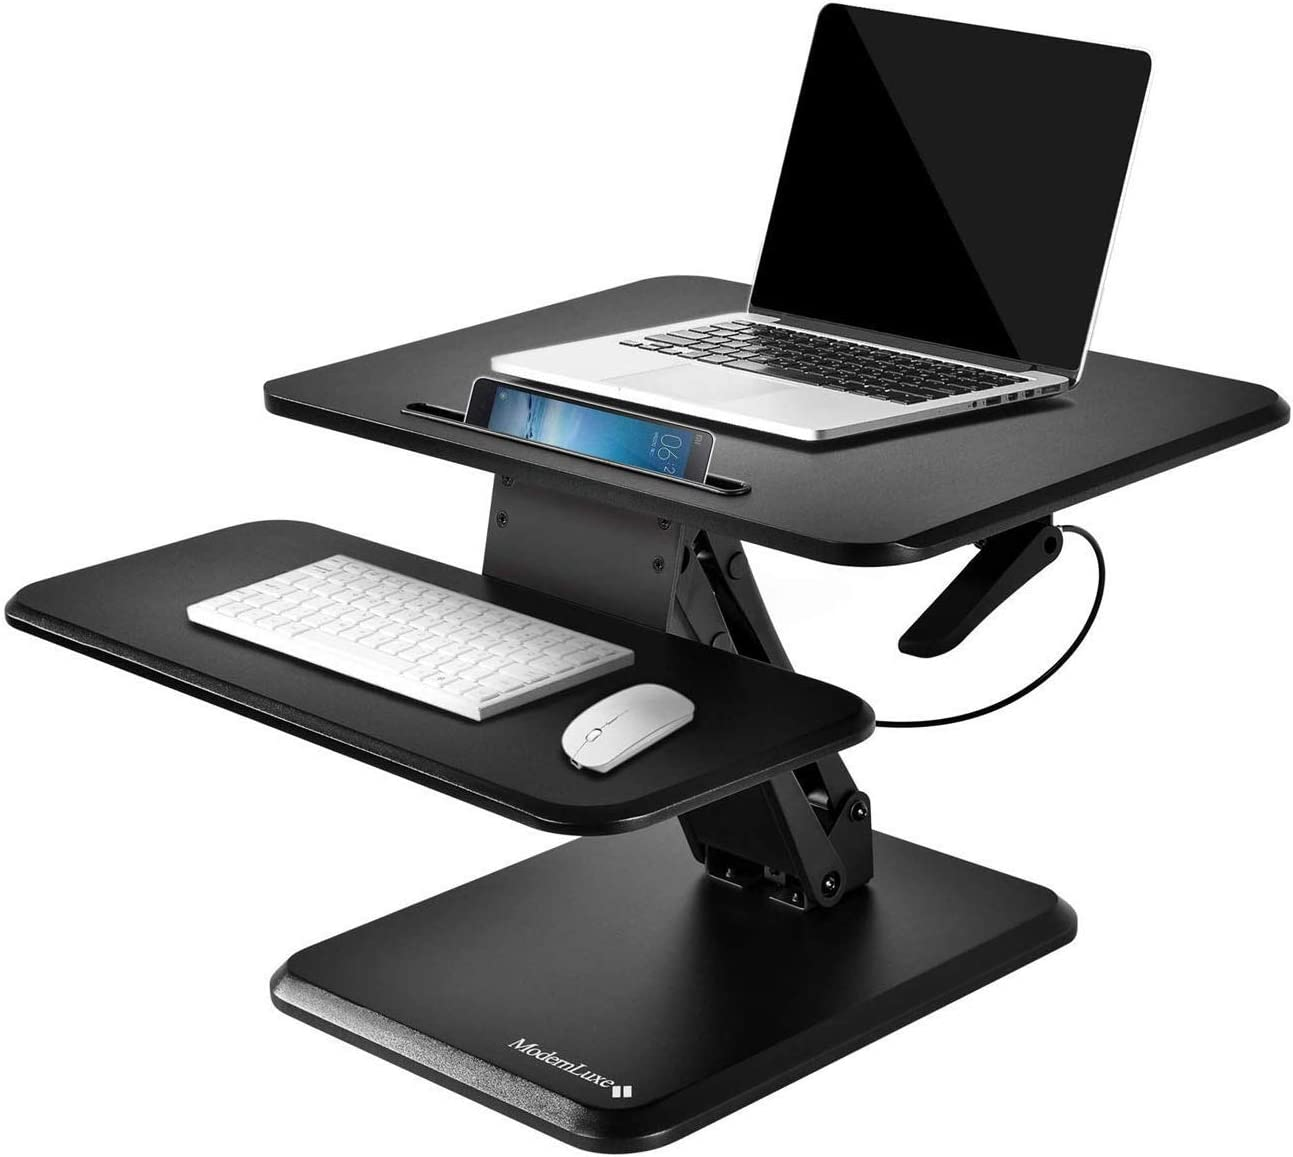 MIERES Standing Converter Desk I-Shaped Bracket Base Phone Holder Double Tray Design Laptop Desktop Workstation, Black